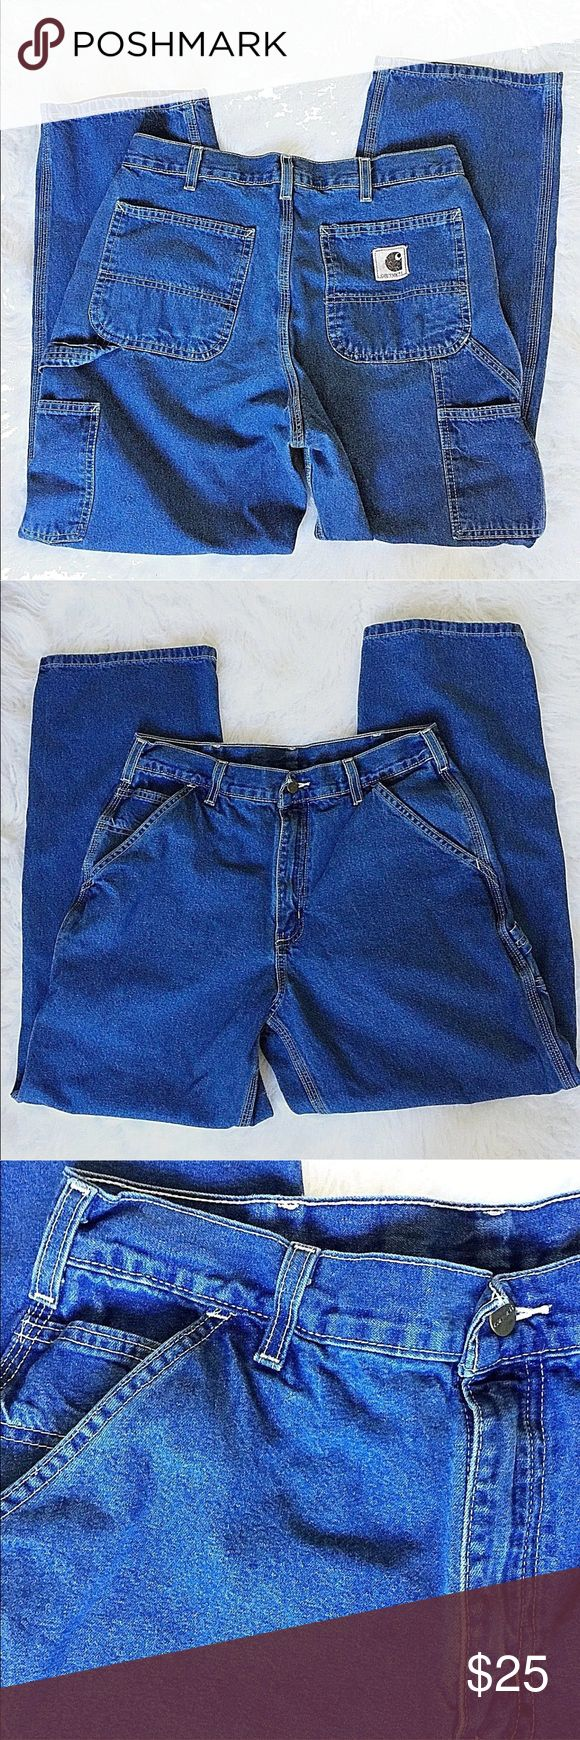 """Carhartt Mens Carpenter Blue Jeans Size 33 X 29 Carhartt Mens Carpenter Denim Blue Jeans Size 33 X 29 Dungarees Work Farm Ranch  Excellent, gently pre-owned condition - no flaws noted  Approximate measurements: Waist 33"""" Inseam 29"""" Rise 12"""" Cuff 9"""" across Carhartt Jeans"""